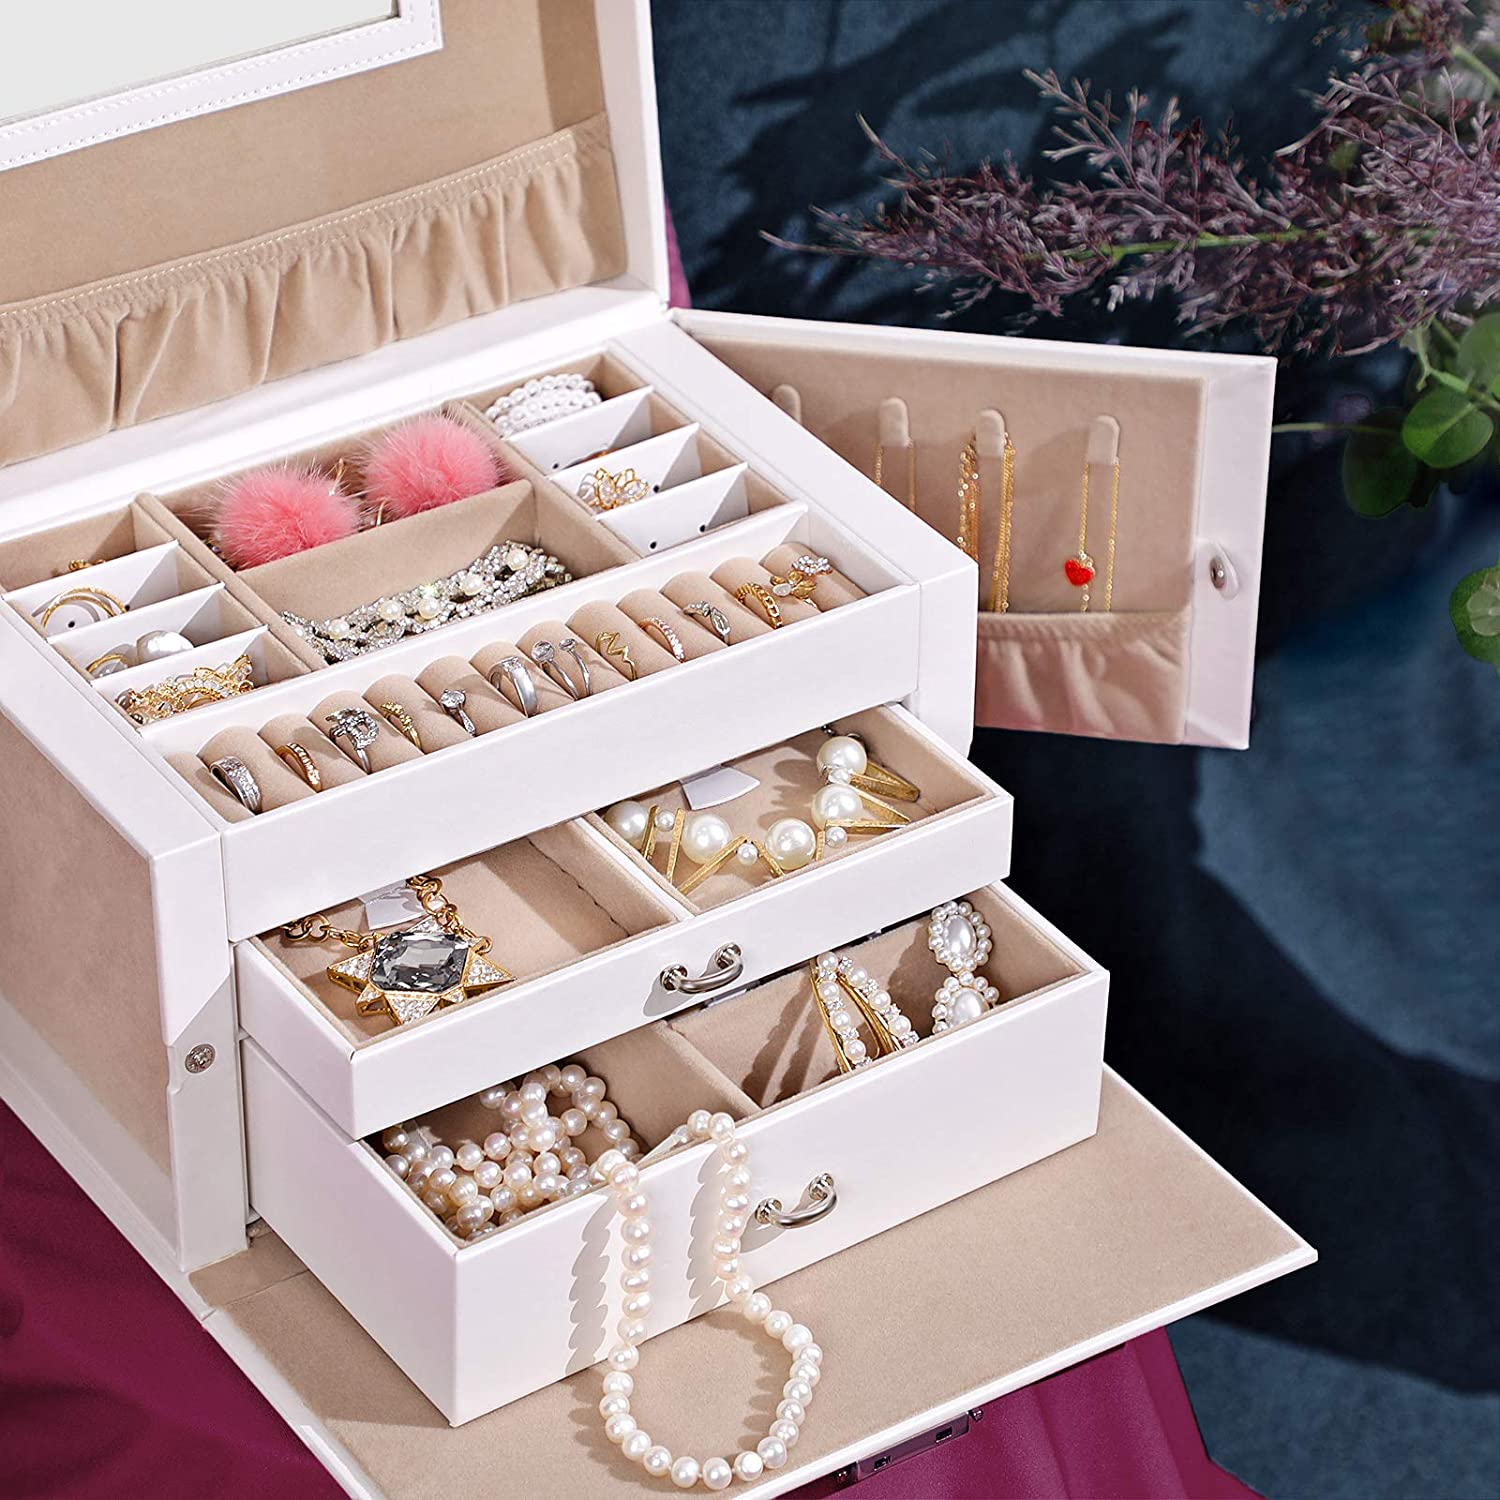 SONGMICS Jewellery Box Gift Bracelets Pink JBC121PK Jewellery Organiser with 2 Drawers for Rings Earrings Lockable Jewellery Case with Mirror Portable Travel Case Necklaces Velvet Lining